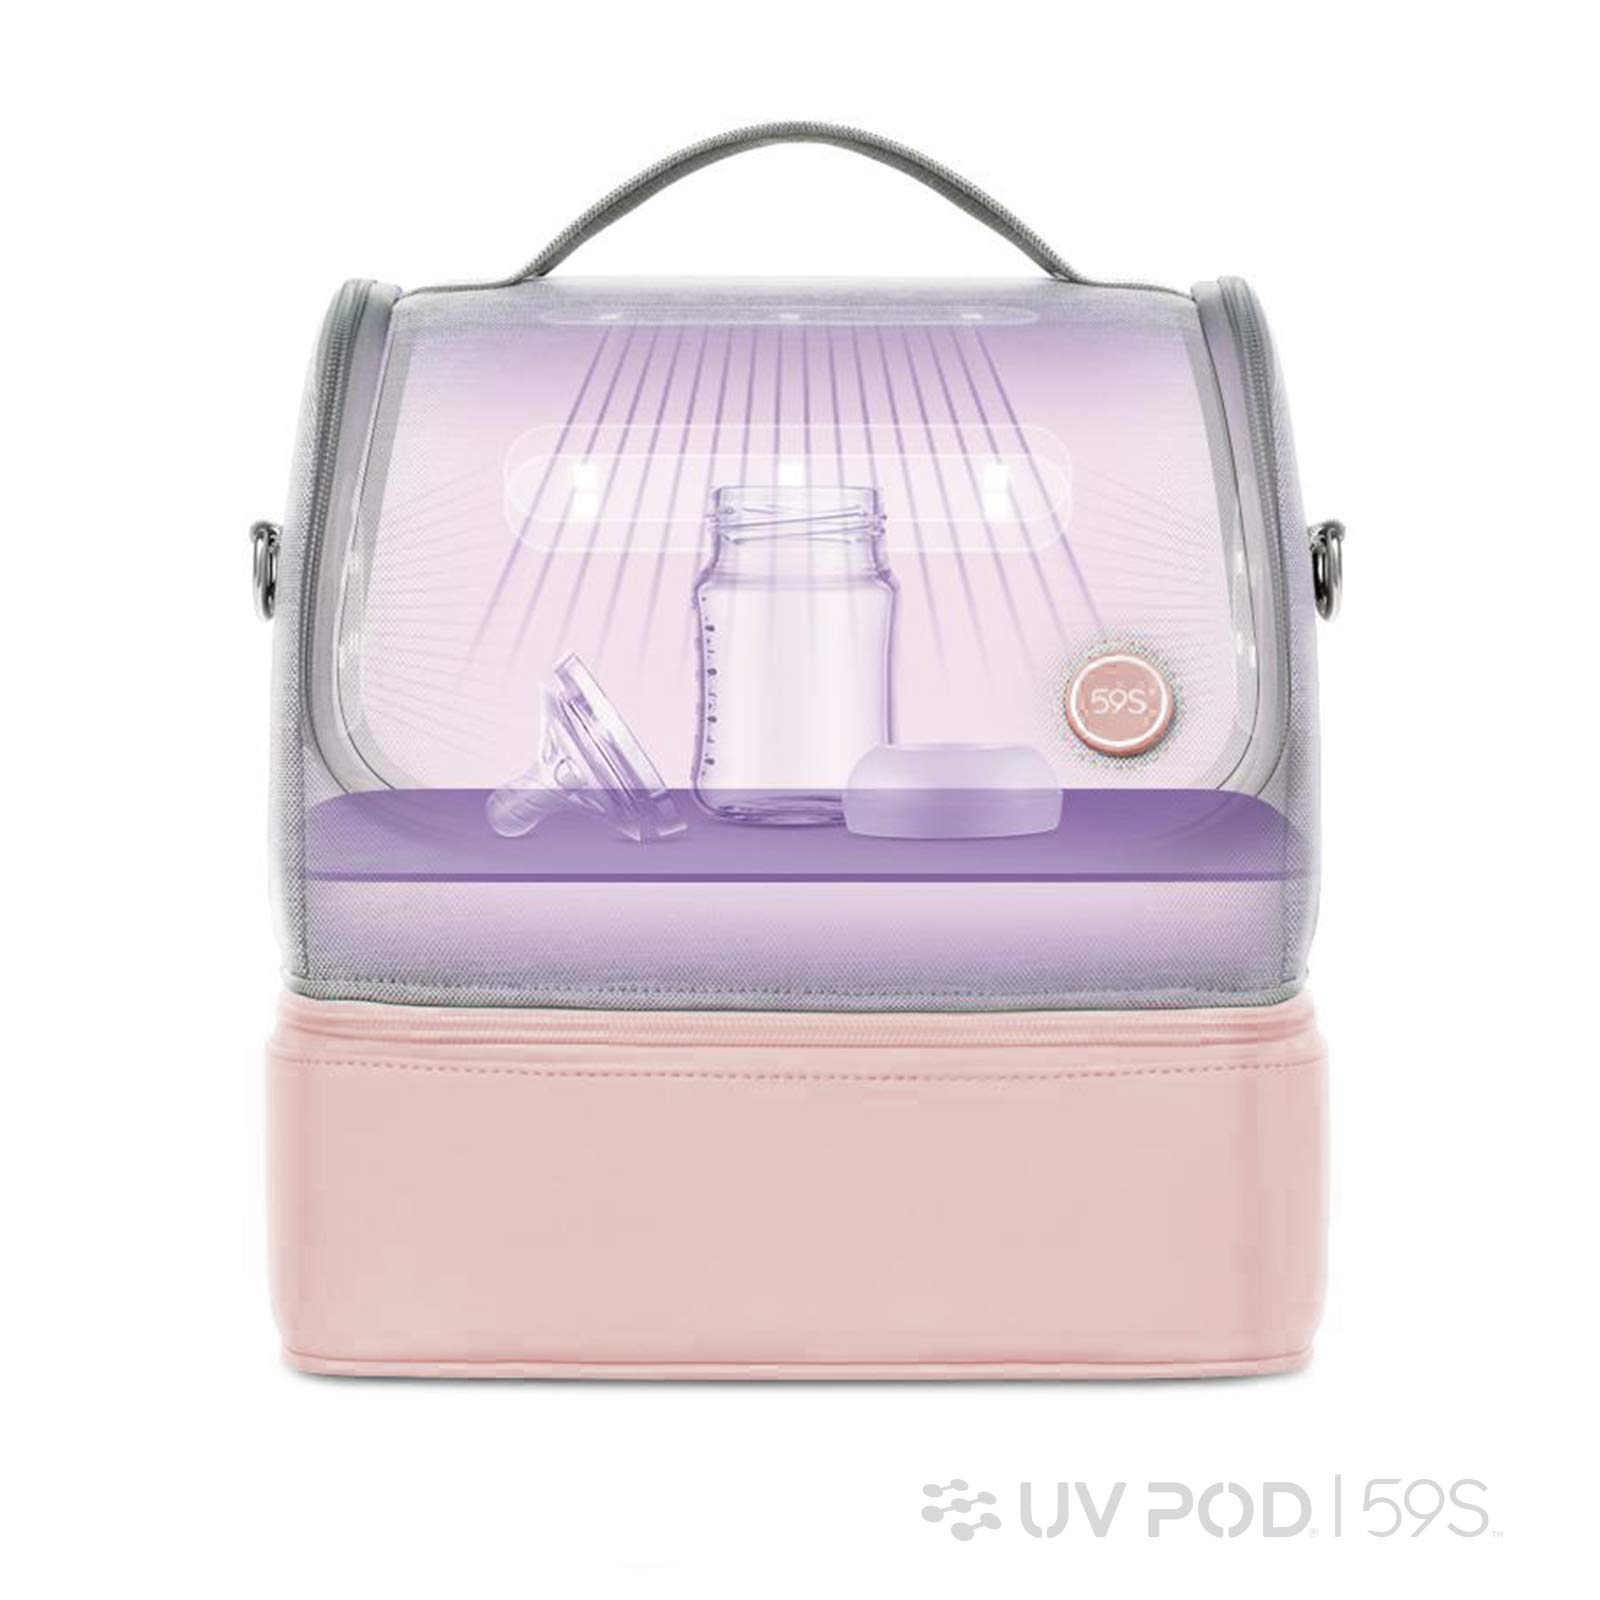 Portable USB Rechargeable LED U-V Disinfect-ion Bag for Baby Bottle//Underwear//Toothbrush//Beauty Tools// ice Trading U-V Sterilizer Bag